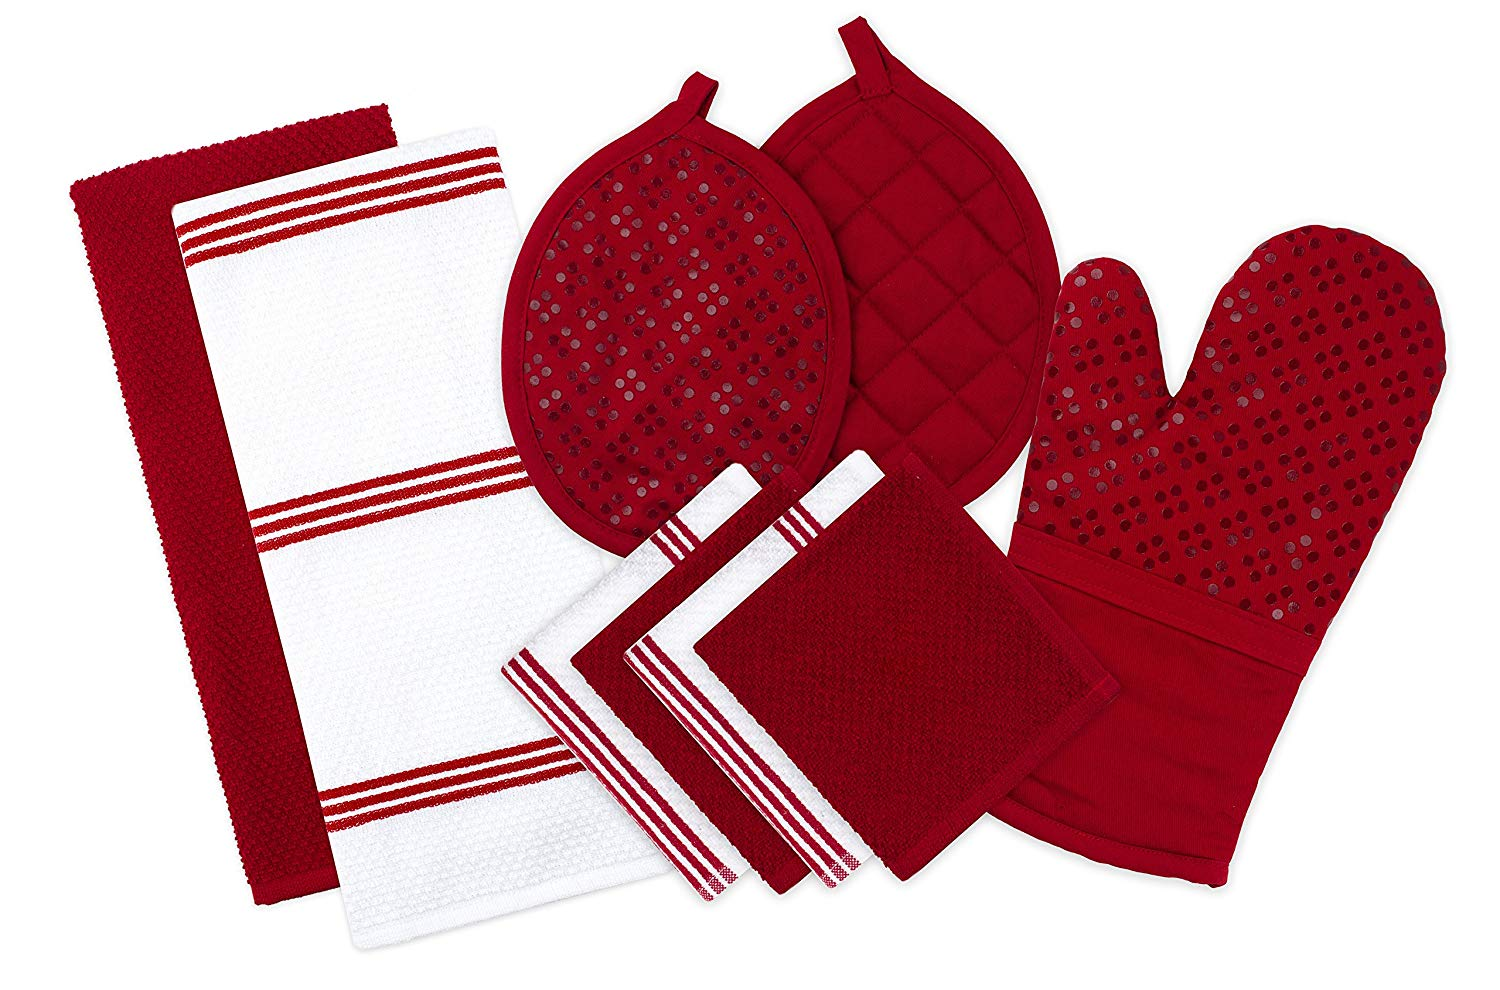 Pot holder clipart clip freeuse stock Sticky Toffee Silicone Printed Oven Mitt & Pot Holder, Cotton Terry Kitchen  Dish Towel & Dishcloth, Red, 9 Piece Set clip freeuse stock